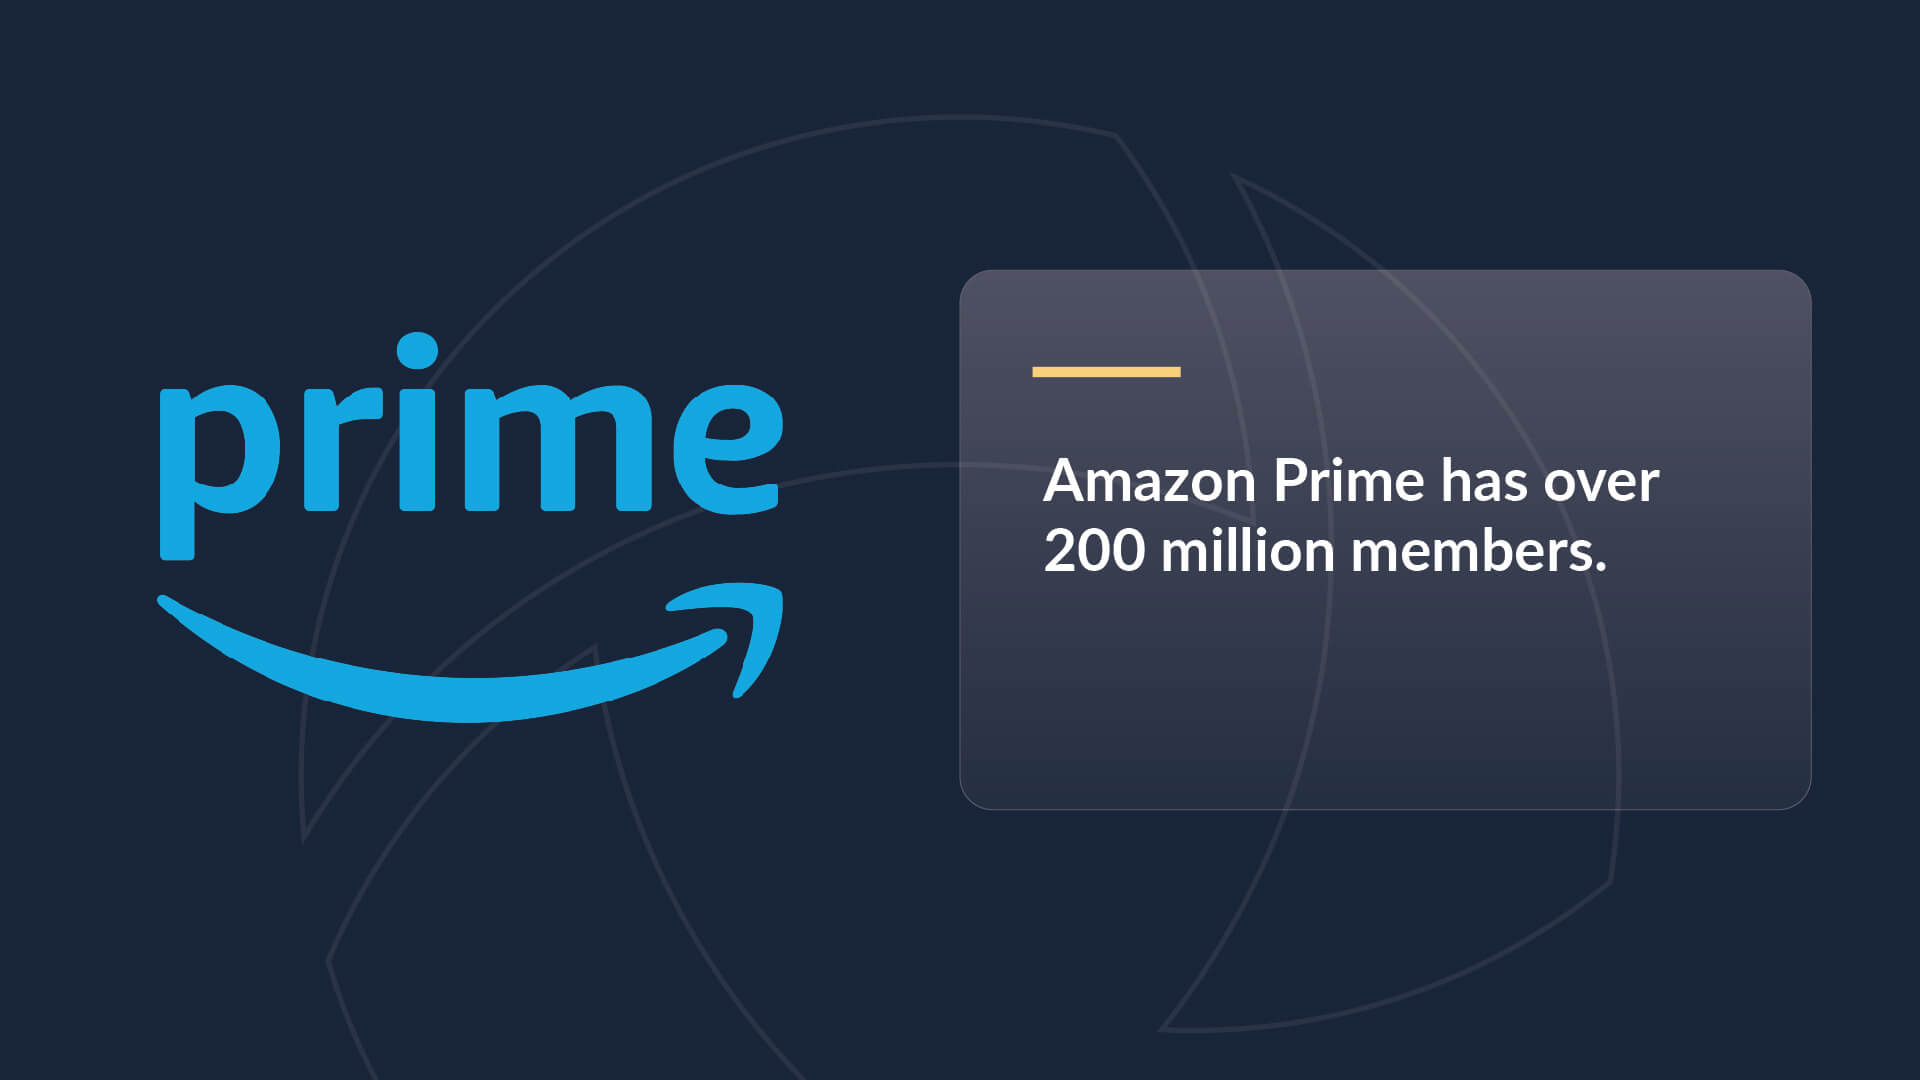 """Prime logo with the caption """"Amazon Prime has over 200 million members""""."""